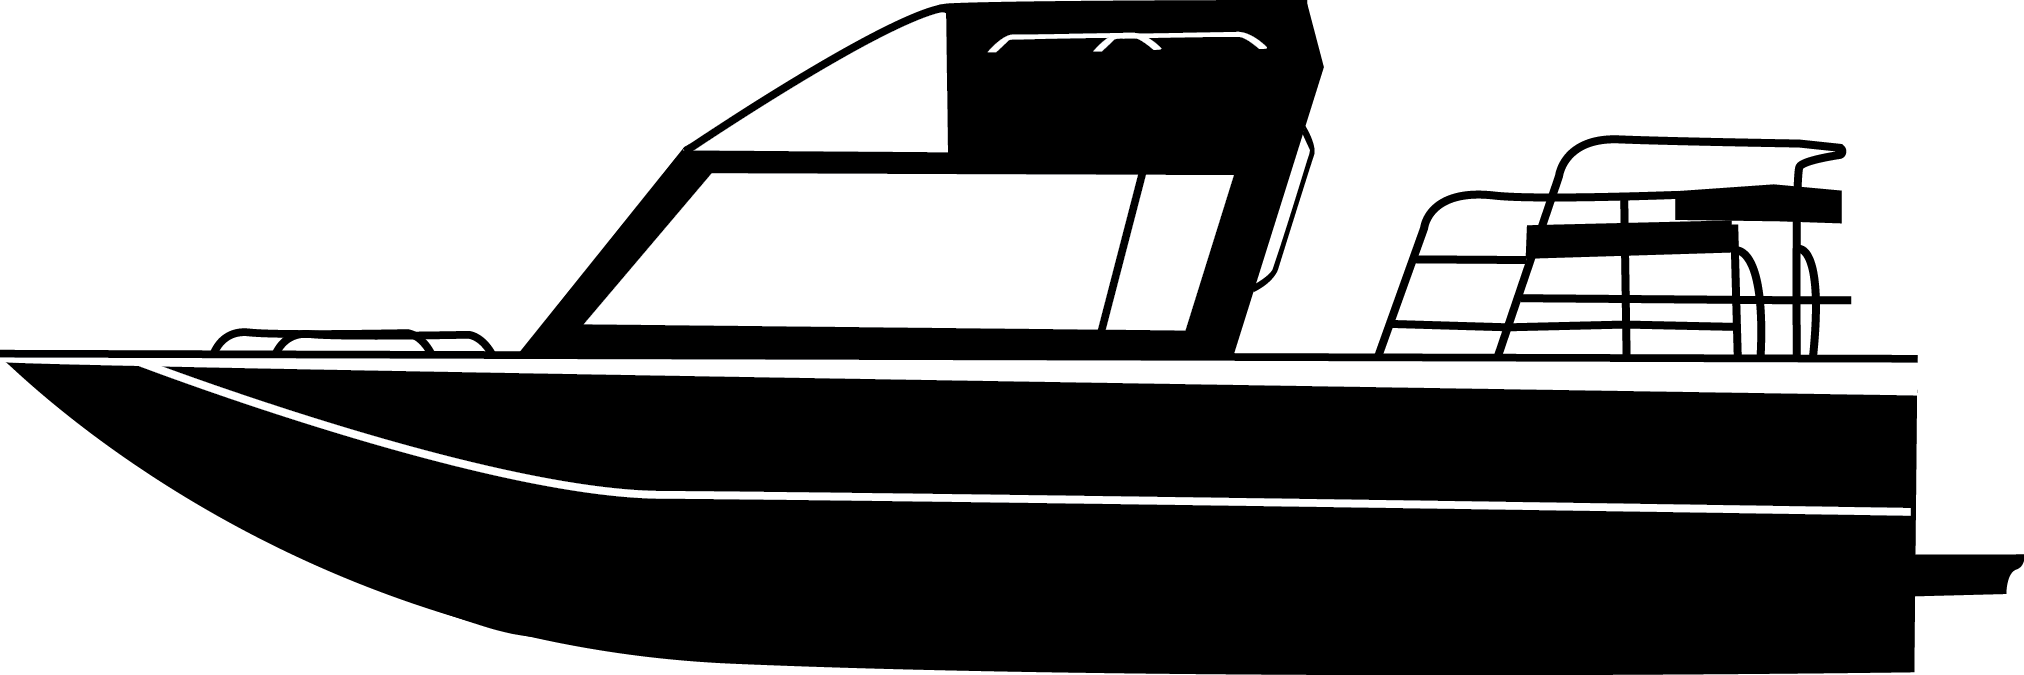 Weldcraft marine river jet. Clipart boat speed boat